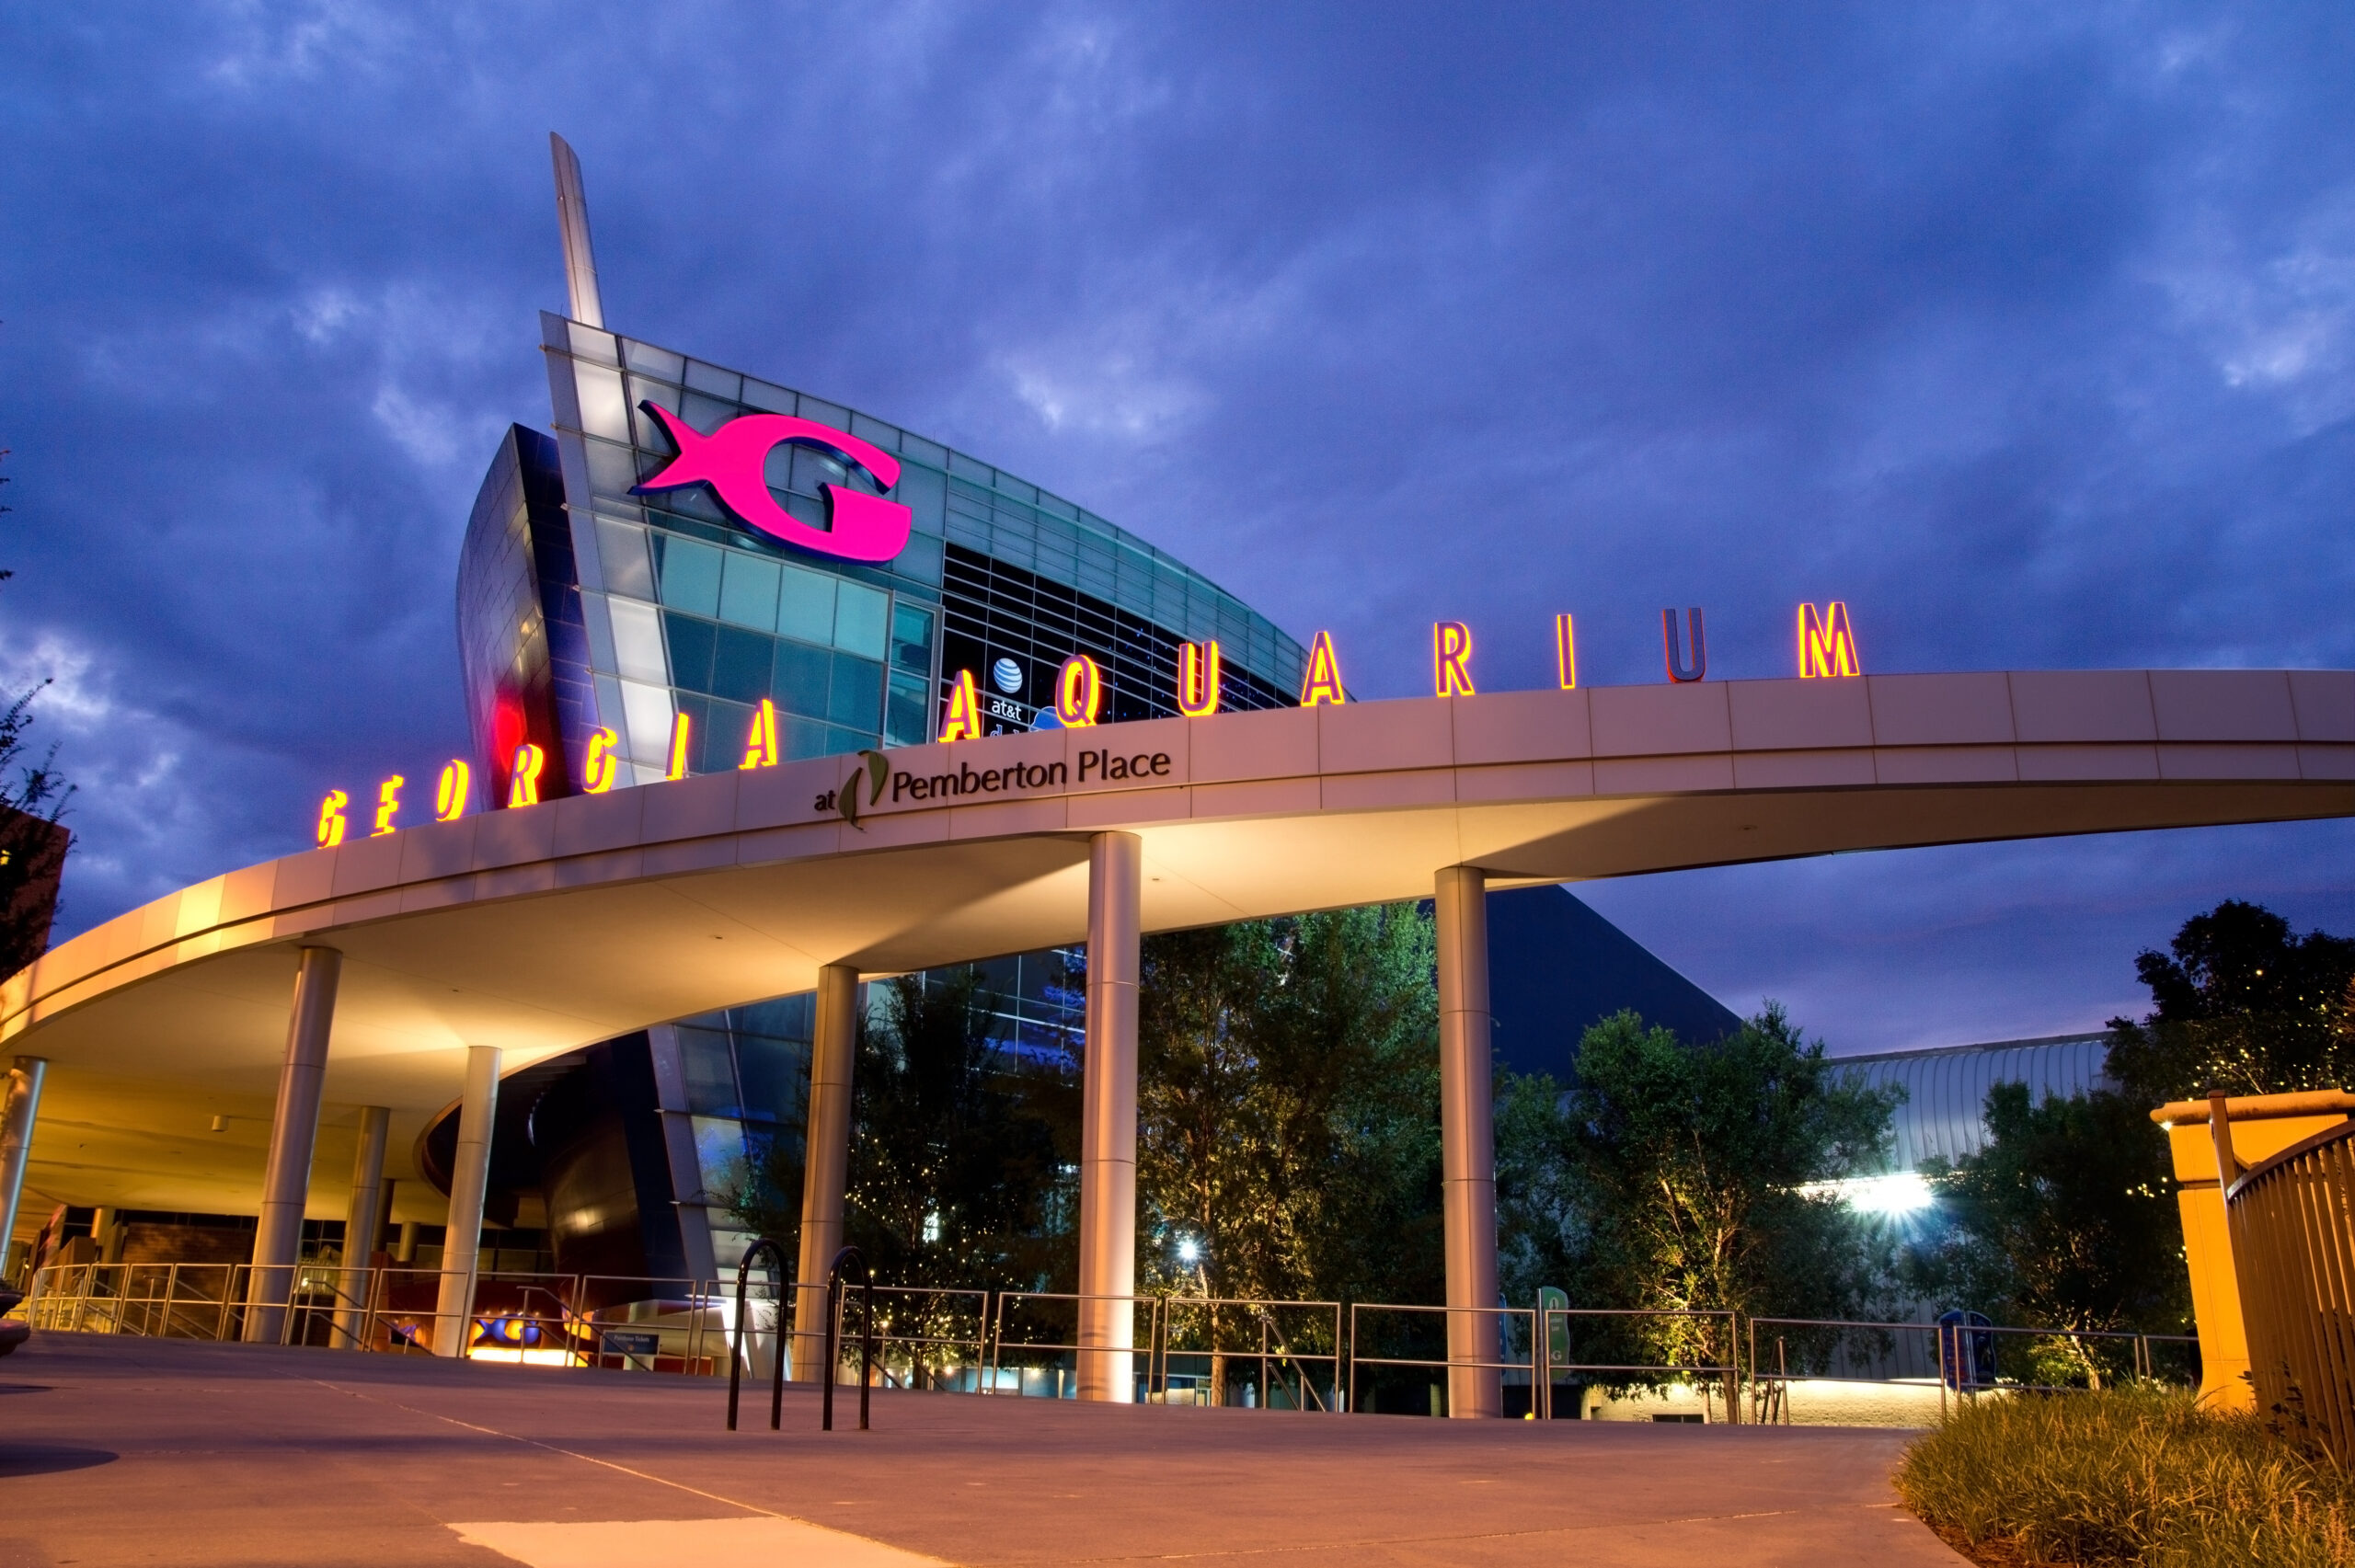 The Georgia Aquarium facade at night in Atlanta, Georgia. The boat shaped landmark is the world's largest aquarium with more than 8 million gallons of water.